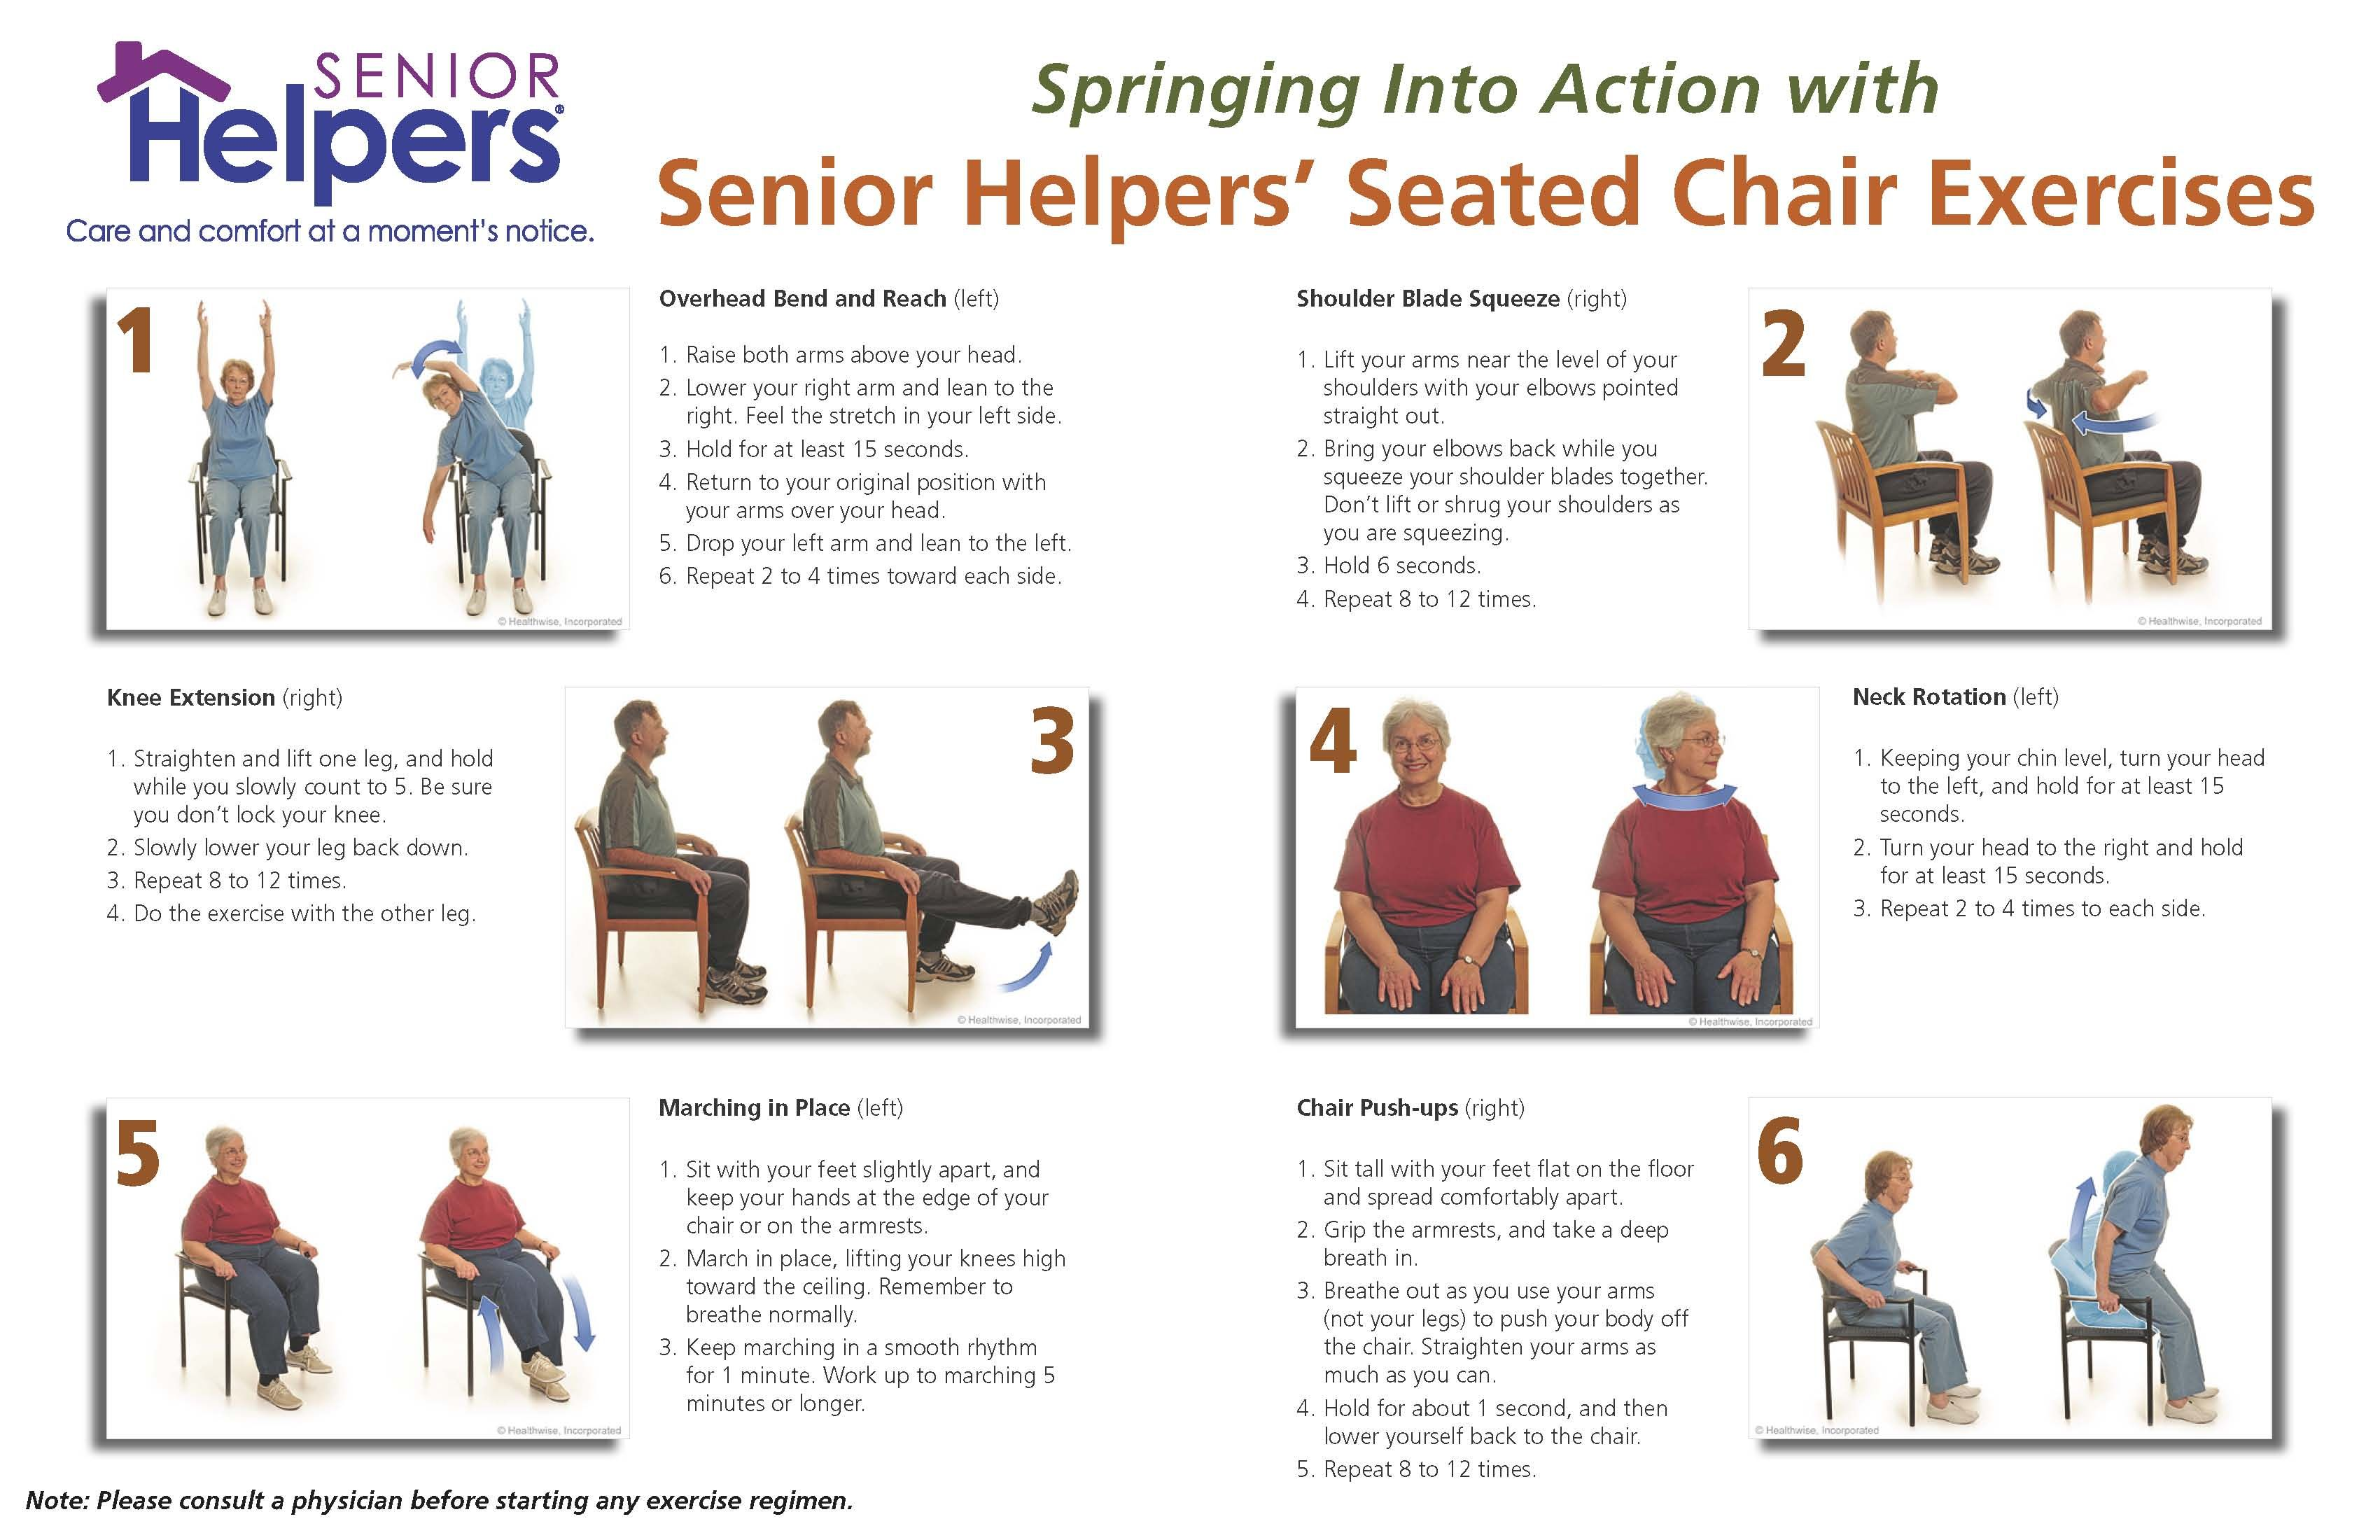 chair games for seniors double camping chairs folding spring into action with seated excercises